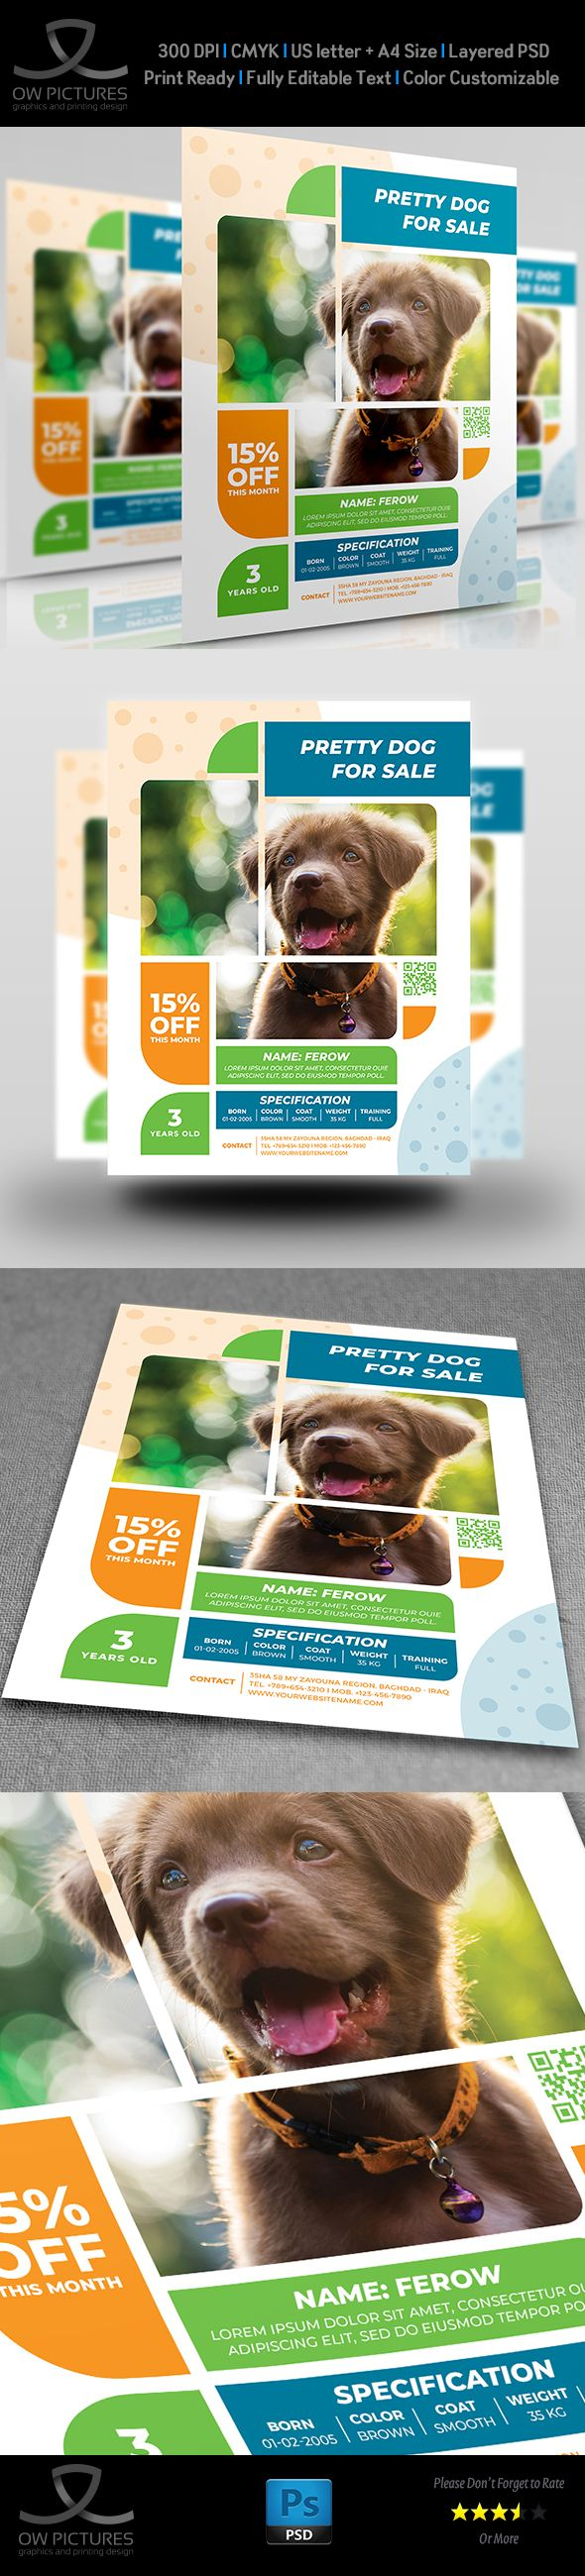 Pets For Sale Flyer Template Pets For Sale Sale Flyer Flyer Template Puppies for sale flyer template